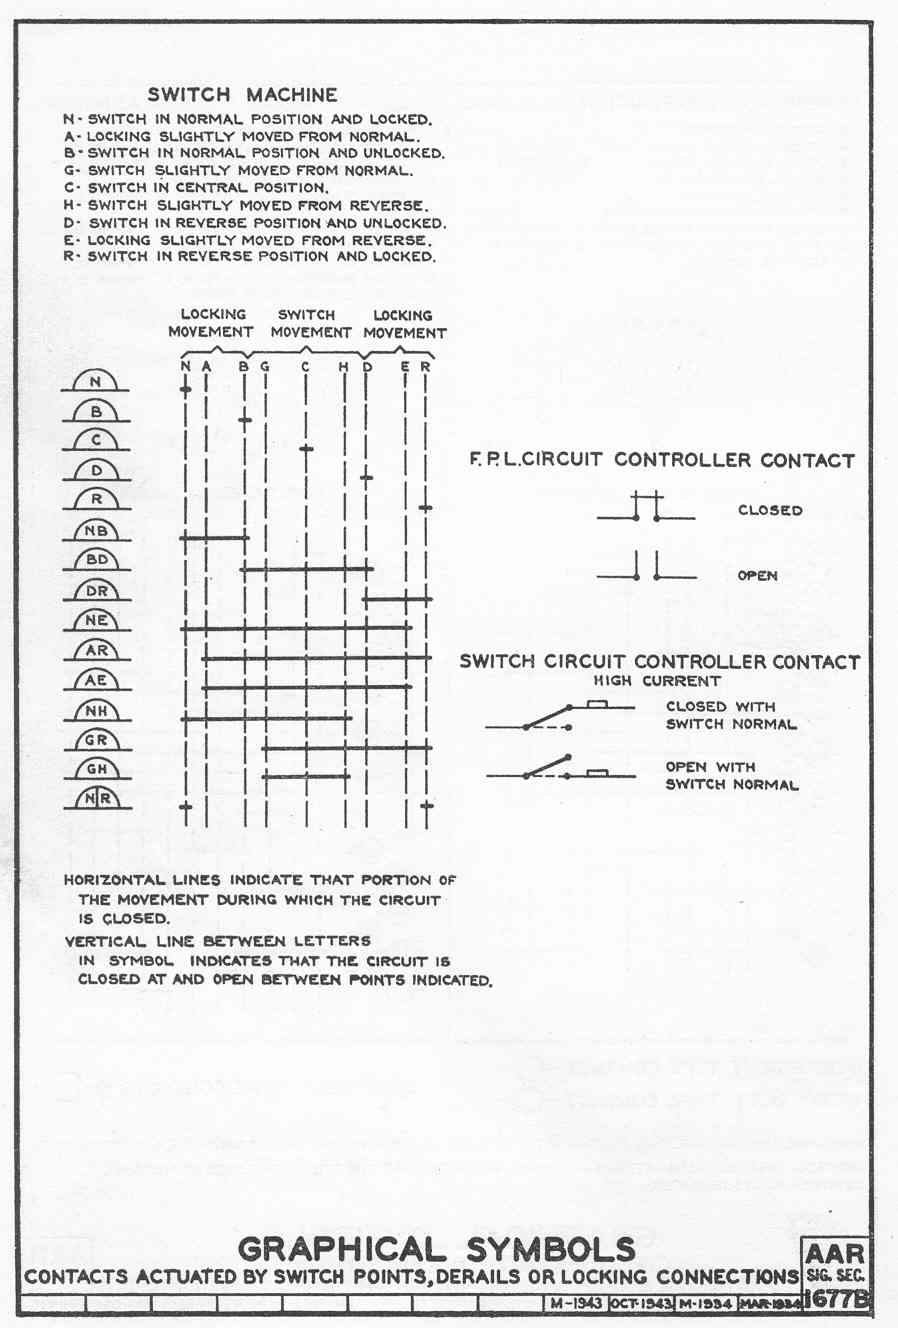 Circuit Nomenclature Symbols Ac Track Wiring Diagram Contacts Actuated By Switch Points Derails Or Locking Connections